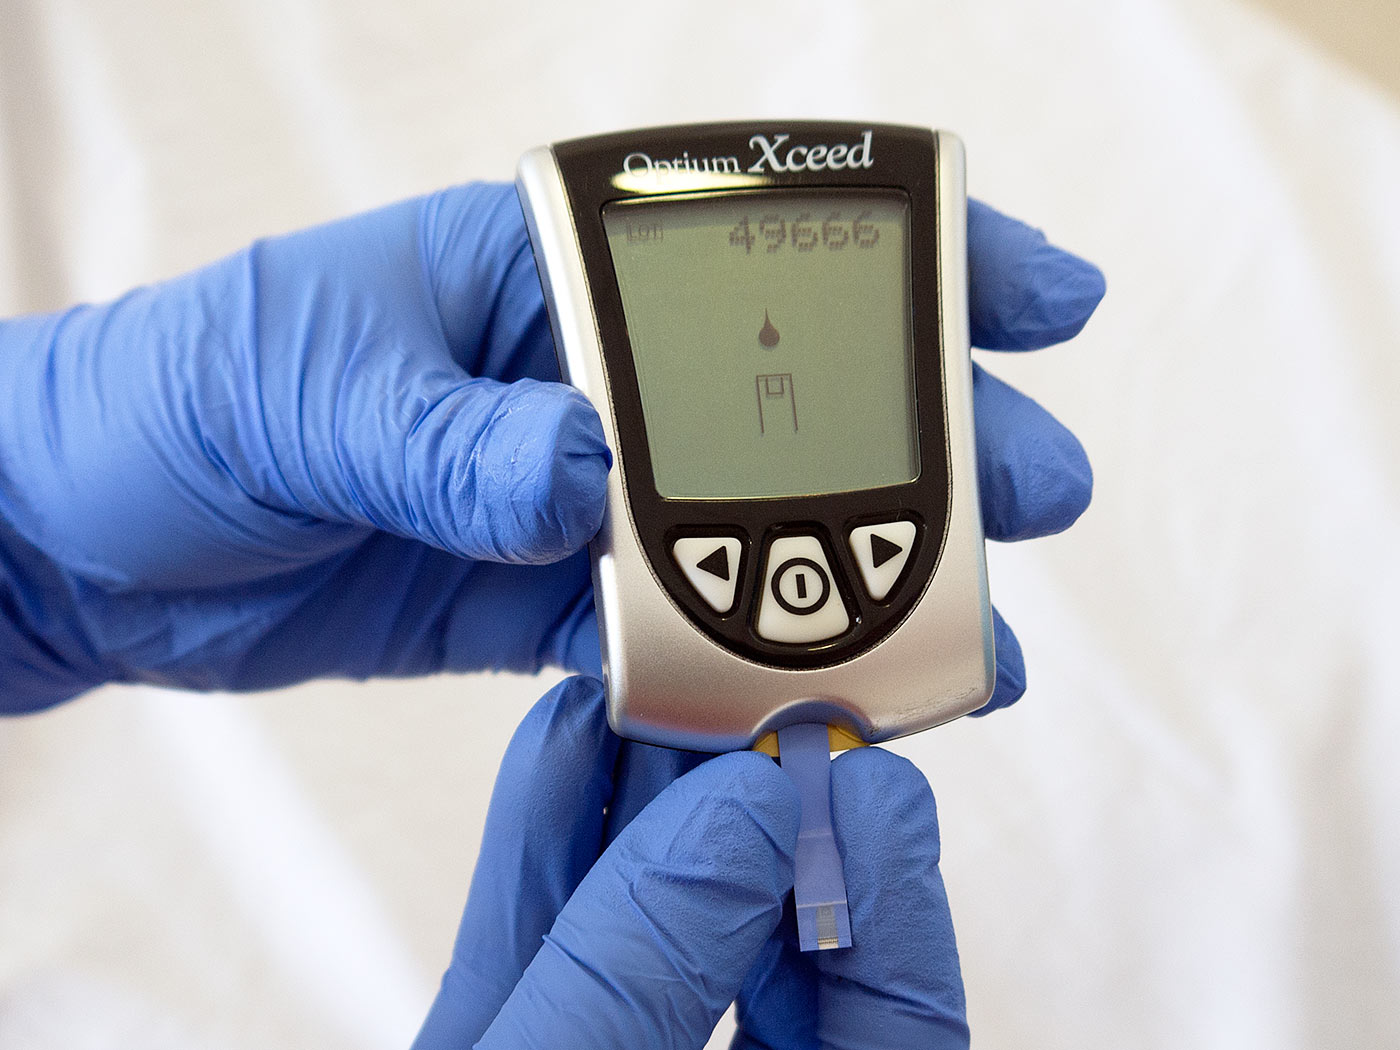 Load the test strip into the glucose monitor